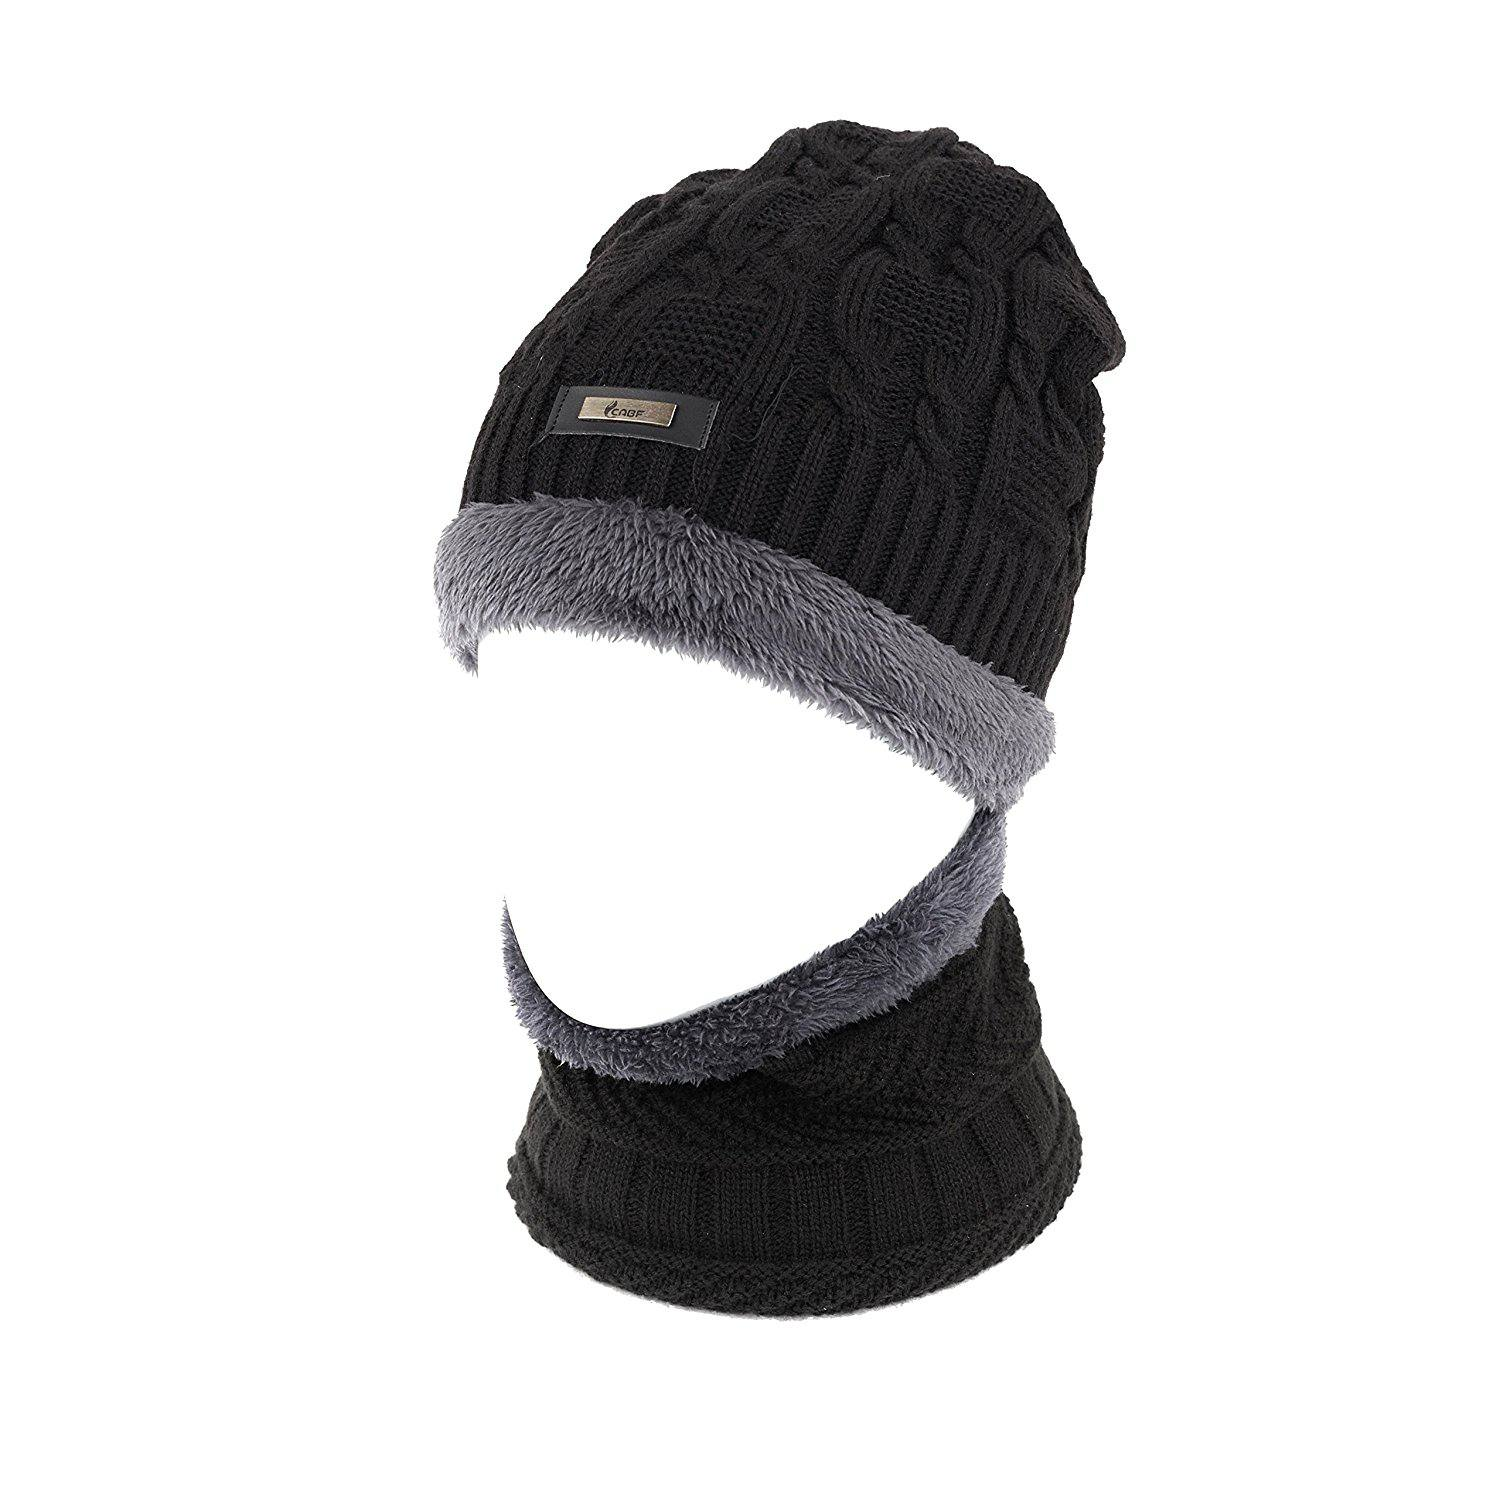 08f5ff28d9b Best Overall  Cable Knit Beanie by Tough Headwear